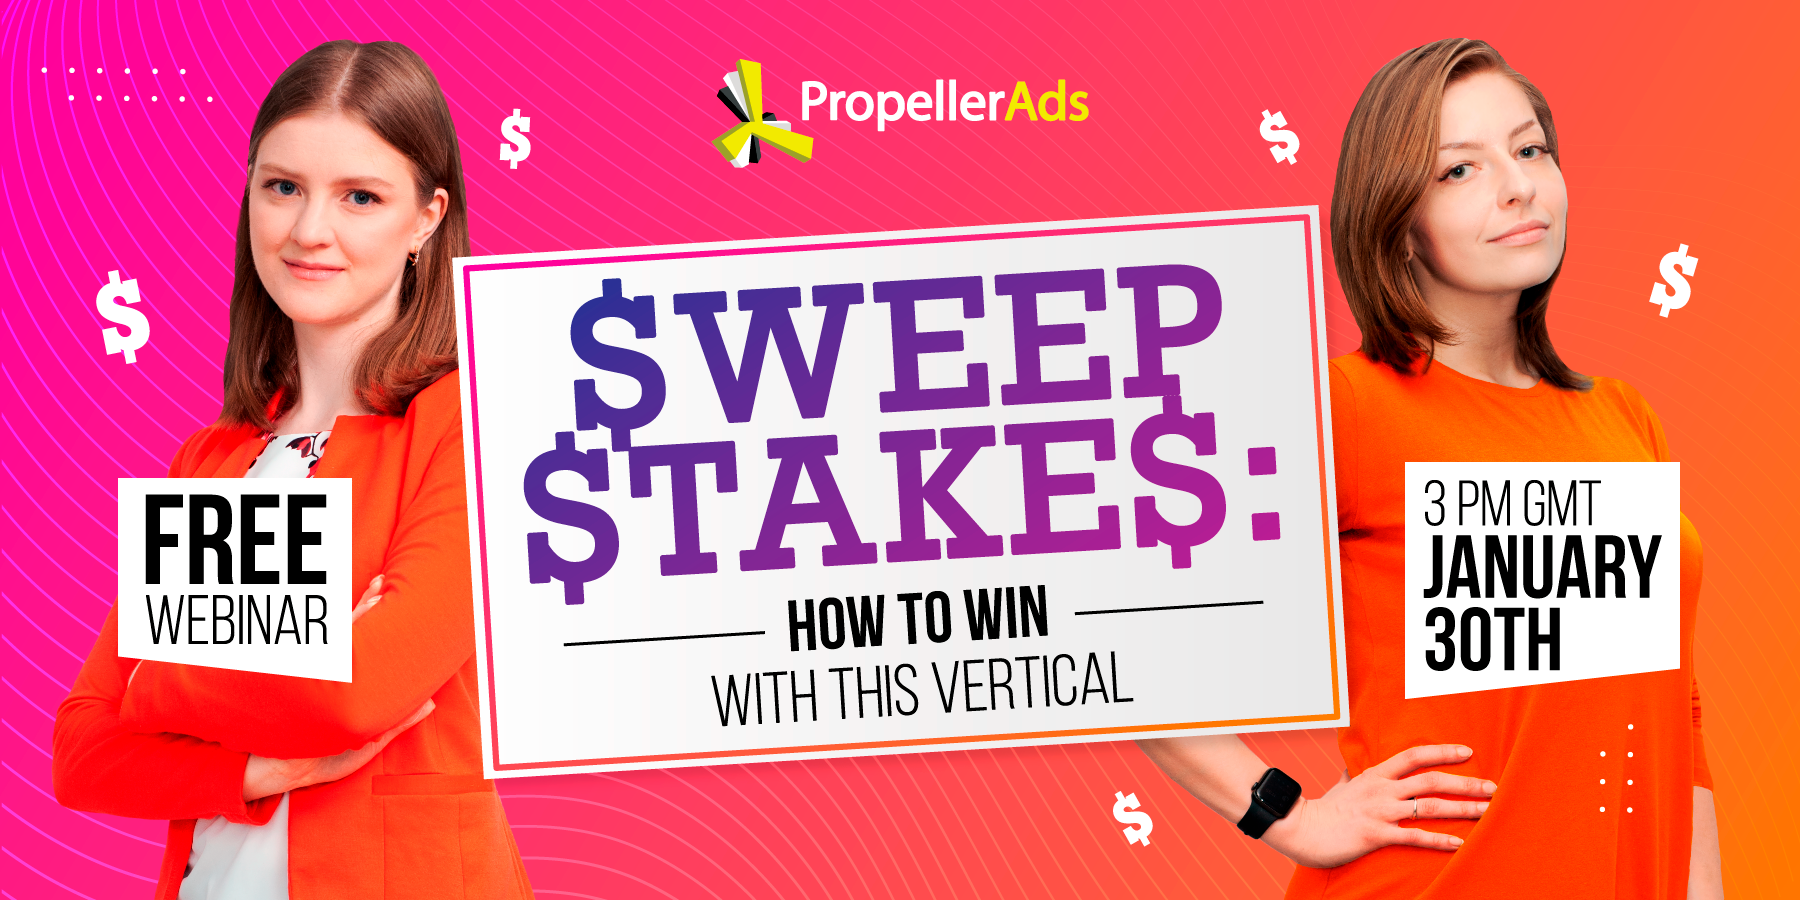 [FREE Webinar] Sweepstakes: How to win with this vertical